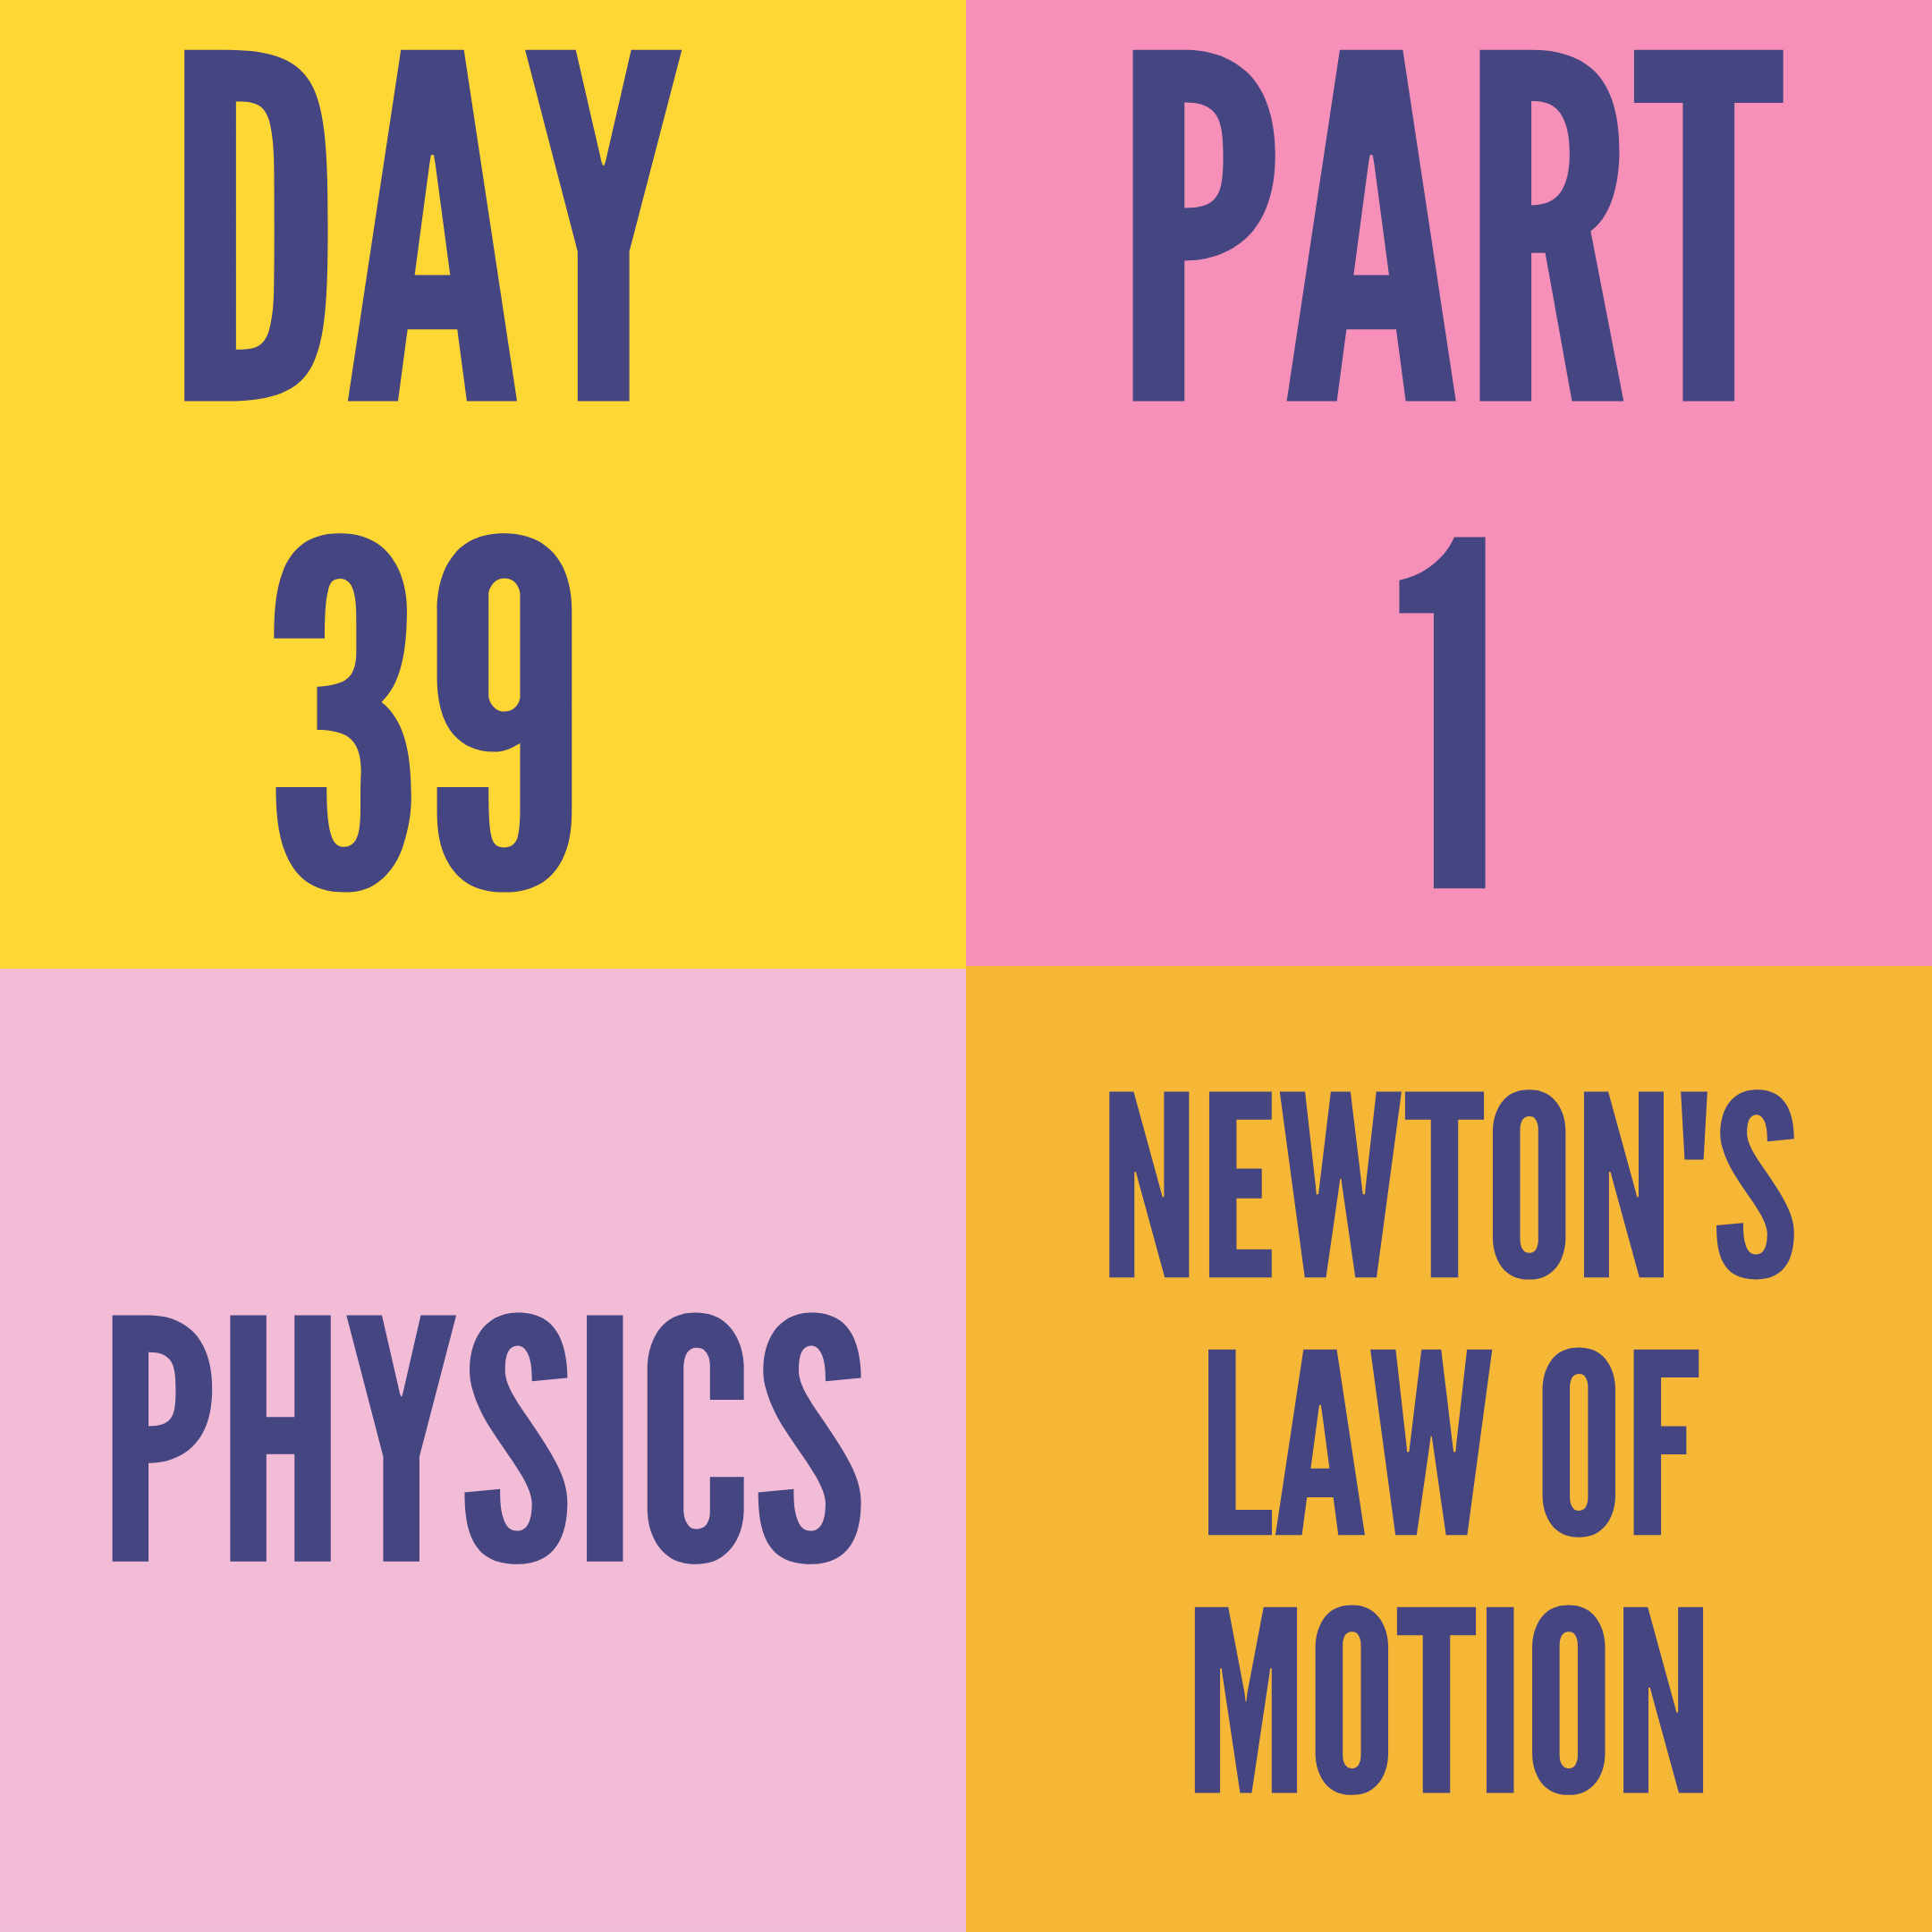 DAY-39 PART-1 NEWTON'S LAW OF MOTION